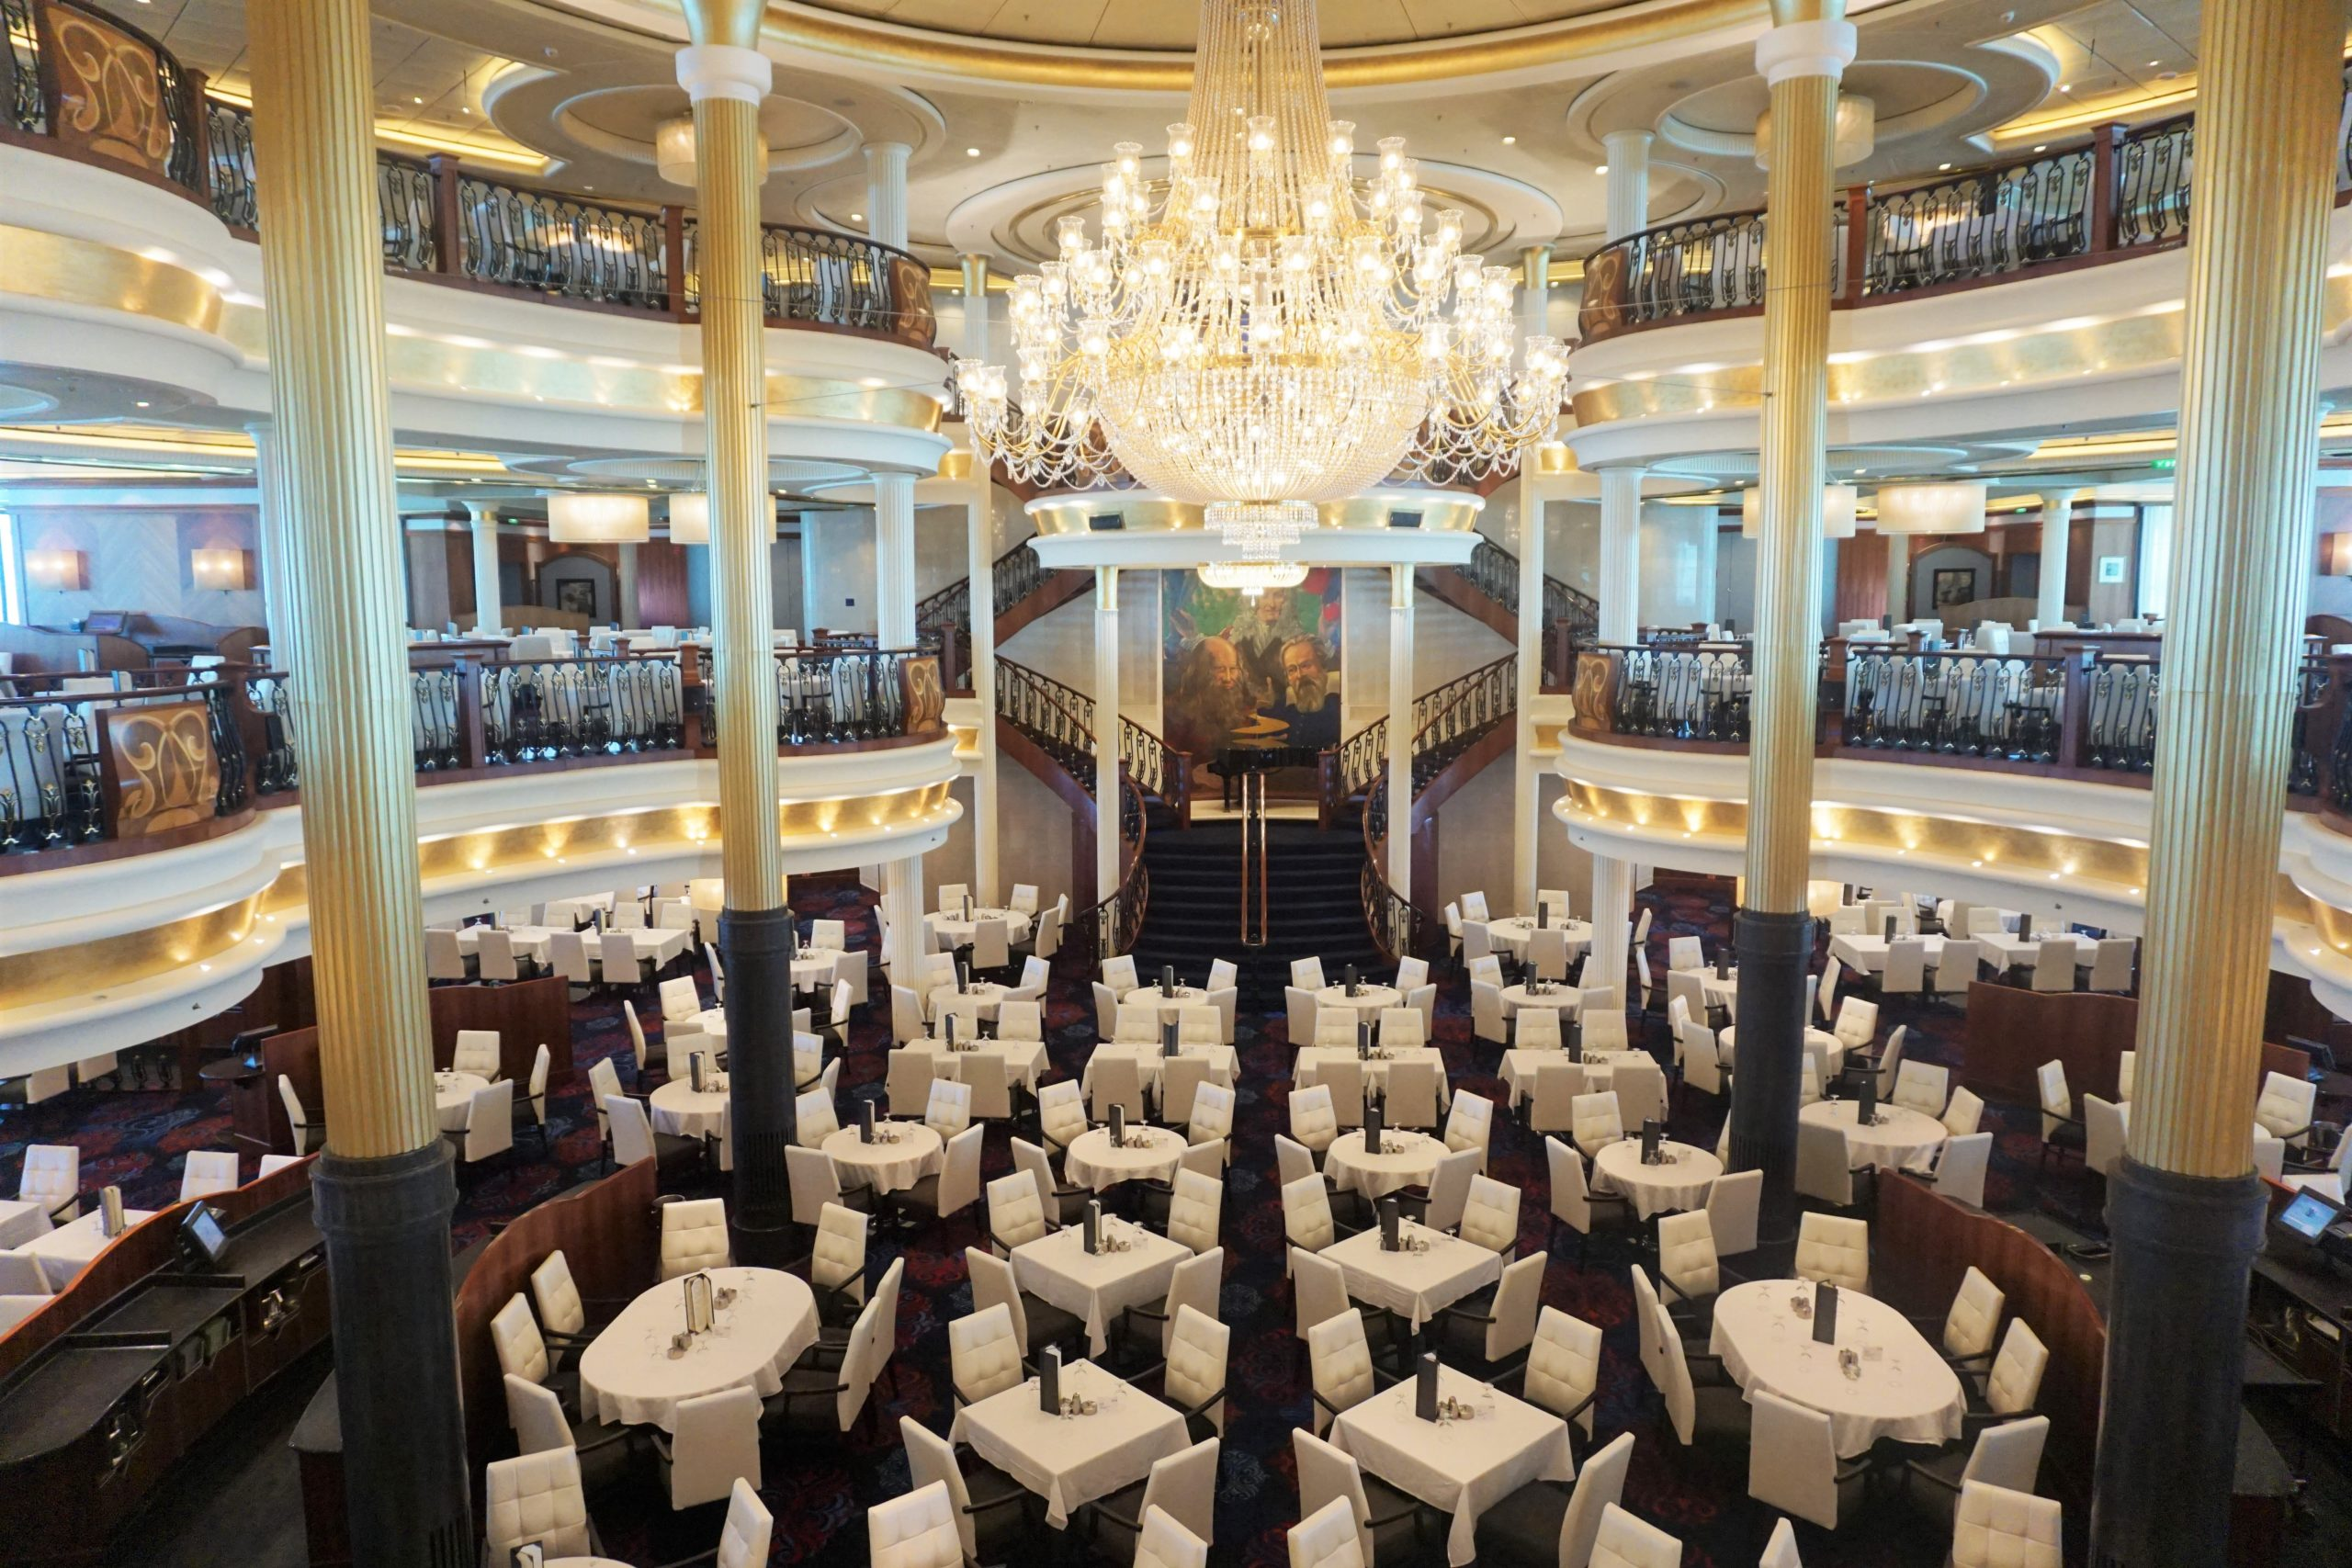 10 Top Foods on Royal Caribbean Cruise Ships